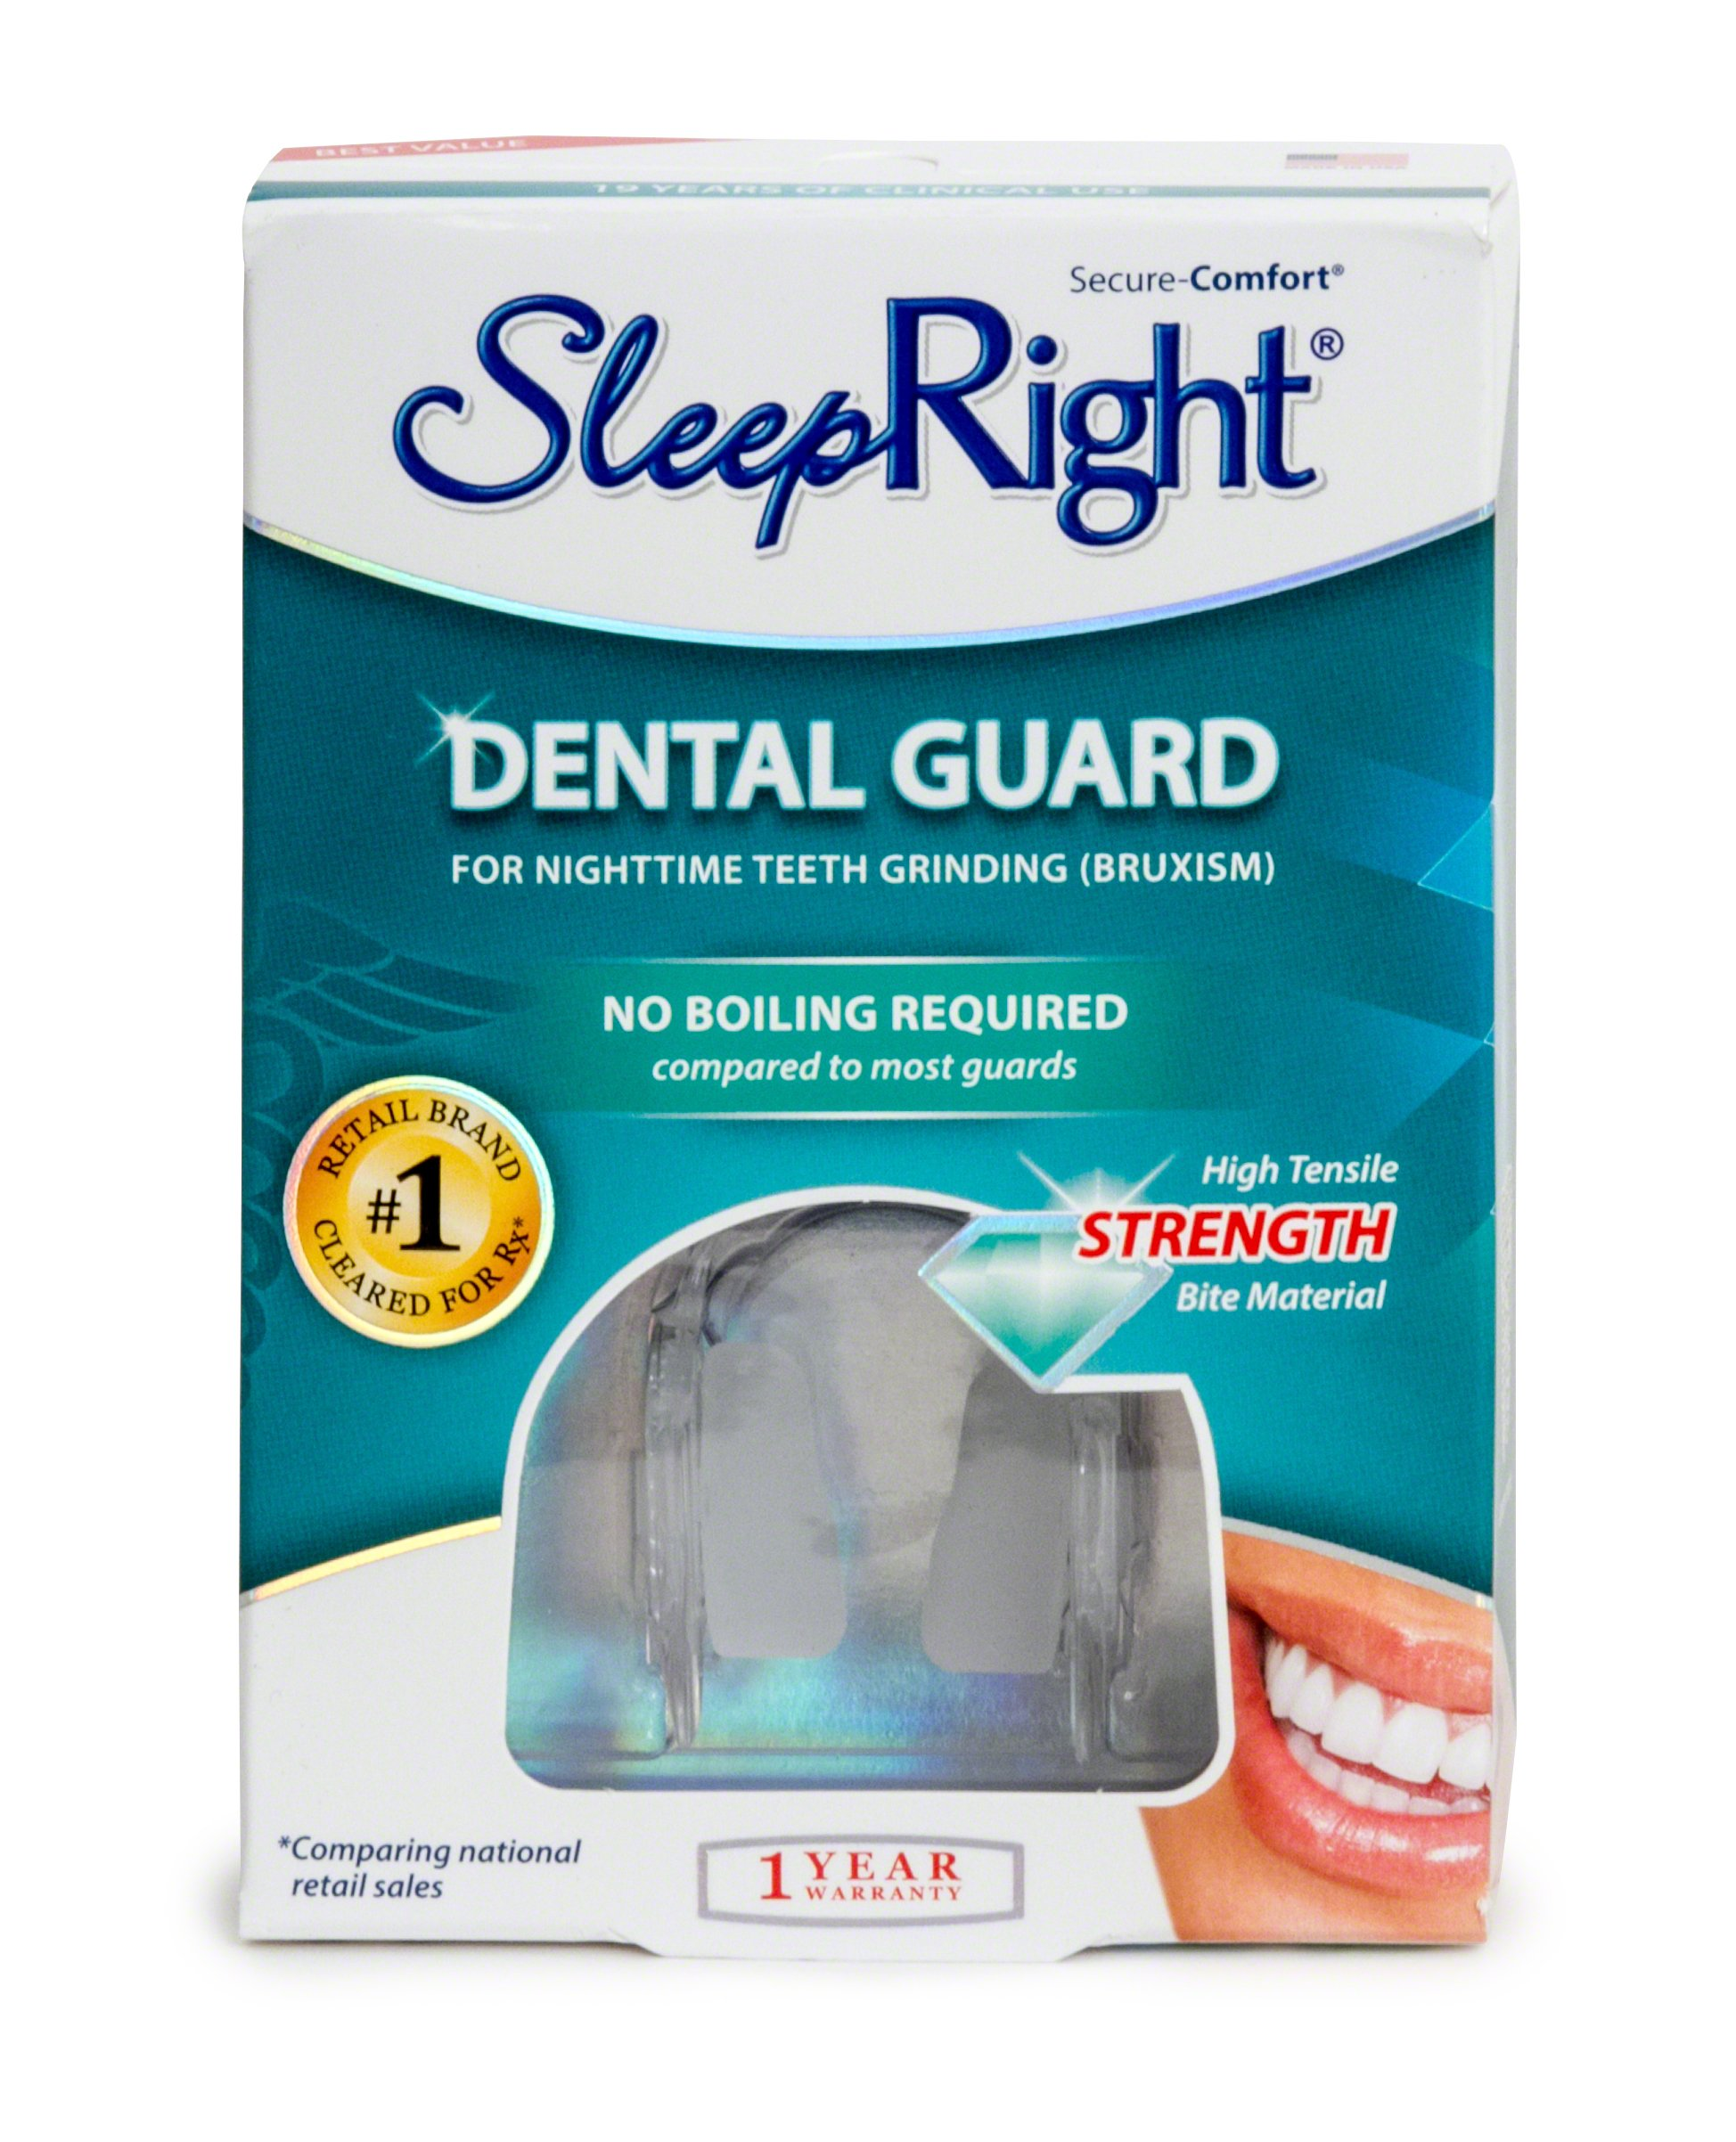 SleepRight Secure-Comfort Dental Guard – Mouth Guard To Prevent Teeth Grinding – SleepRight No Boil Dental Guard